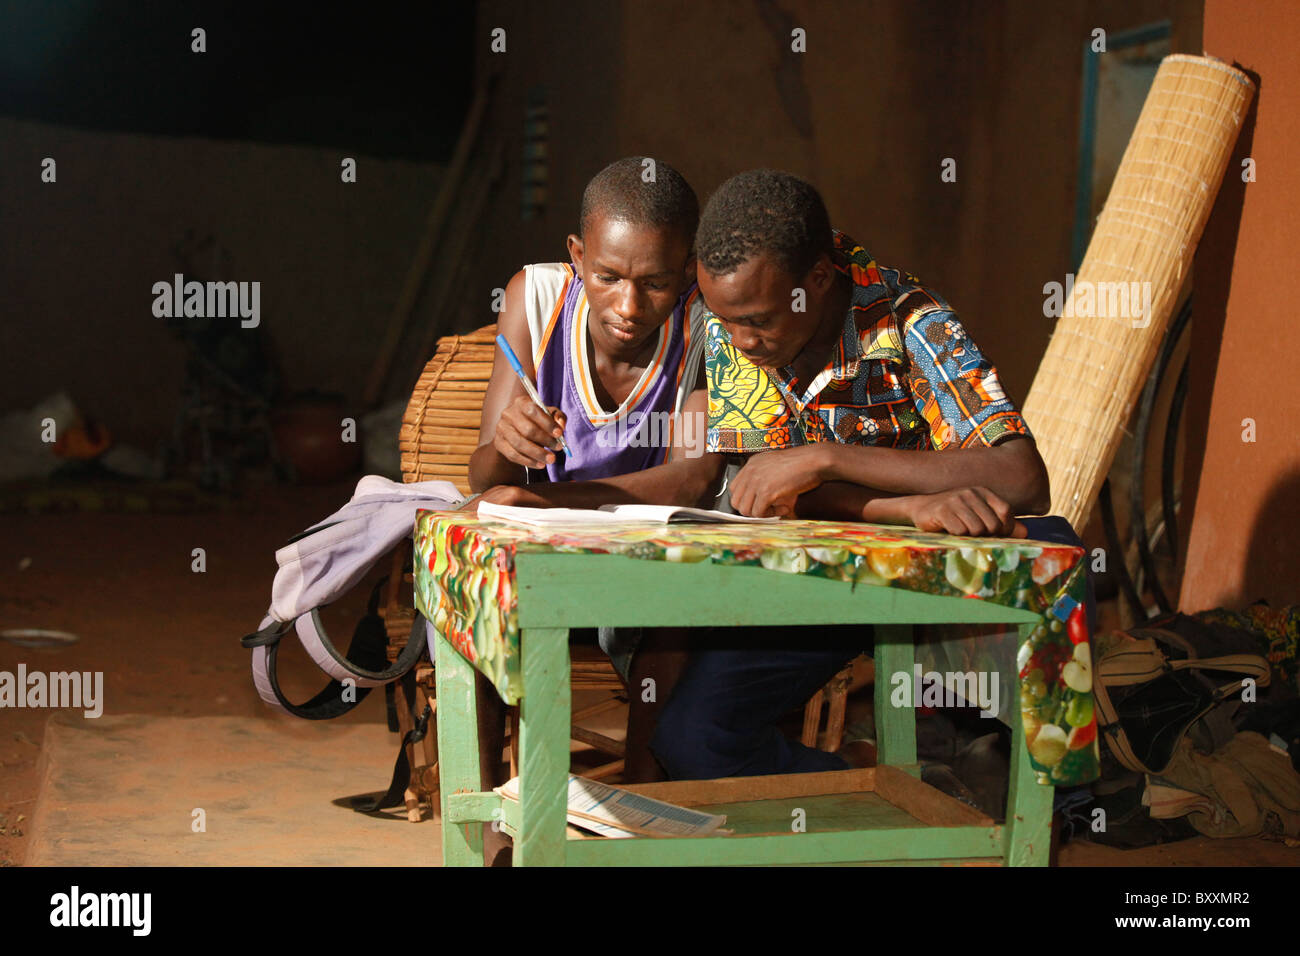 Two junior high school students (equivalent of the 7th grade in the US) study at night in the yard of their home. - Stock Image